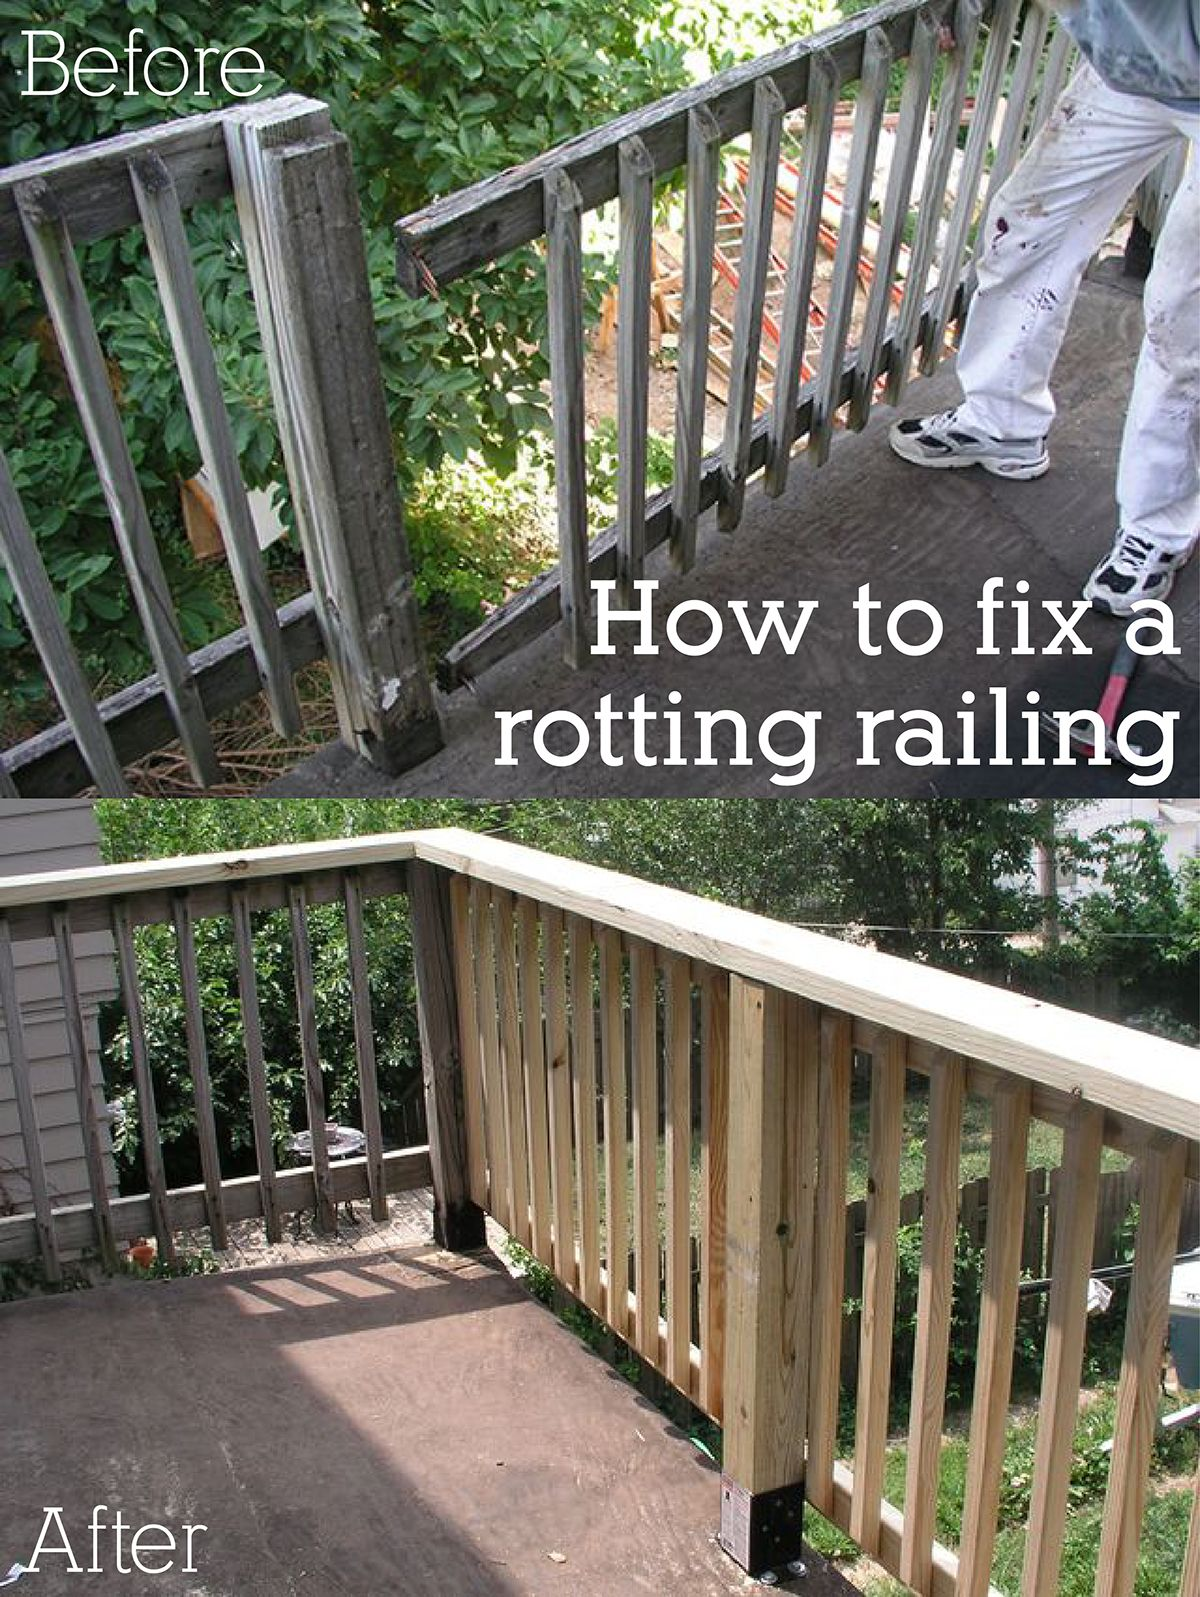 A Rotting Porch Railing Or Fence Can Be Hazardous And Should Repaired Asap You